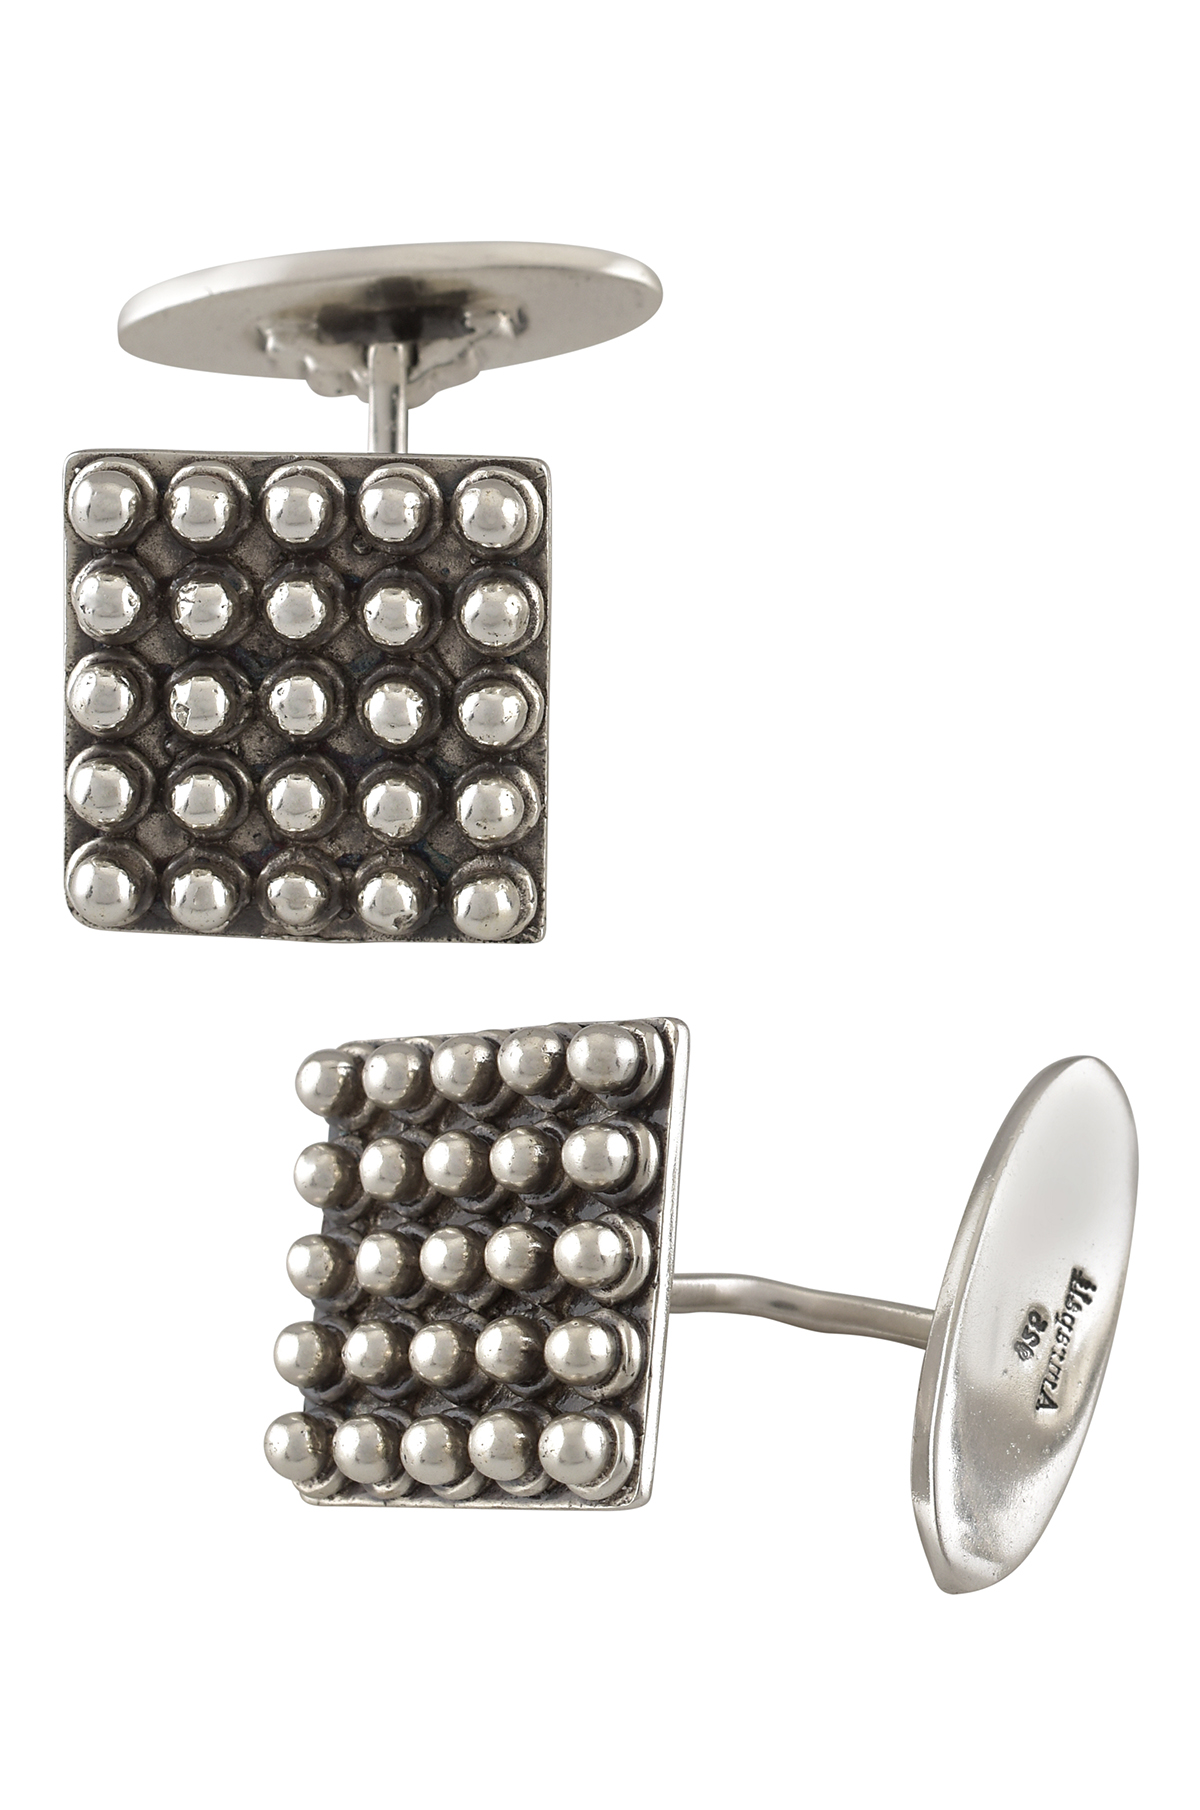 Silver Oxidised Square Rawa Cufflinks